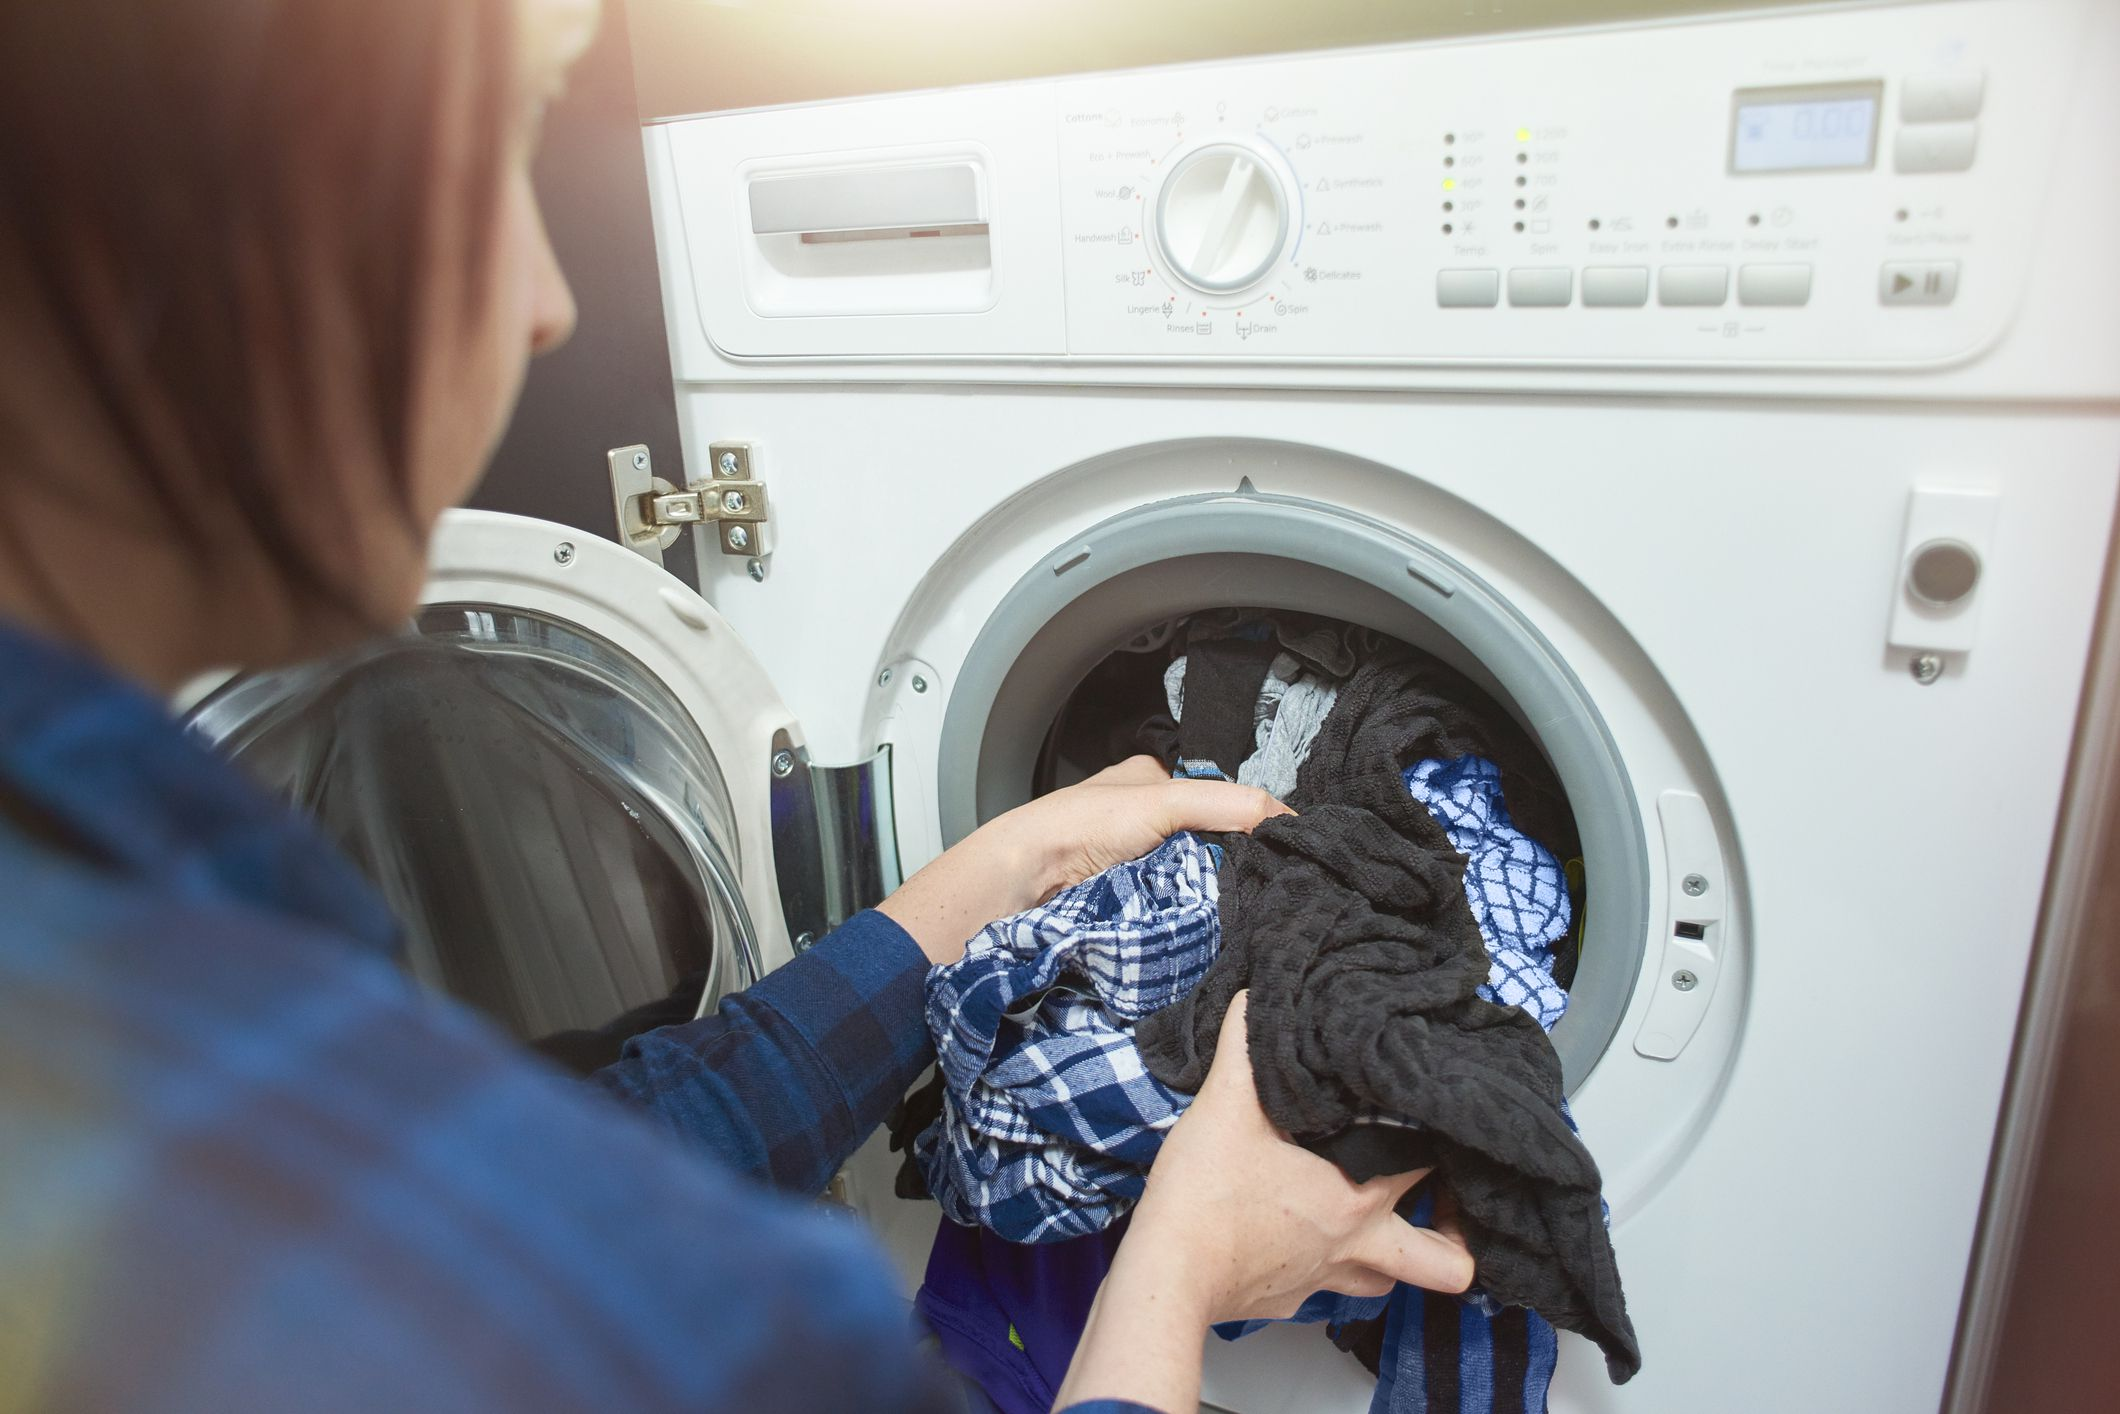 What Causes Holes In Clothes After Washing